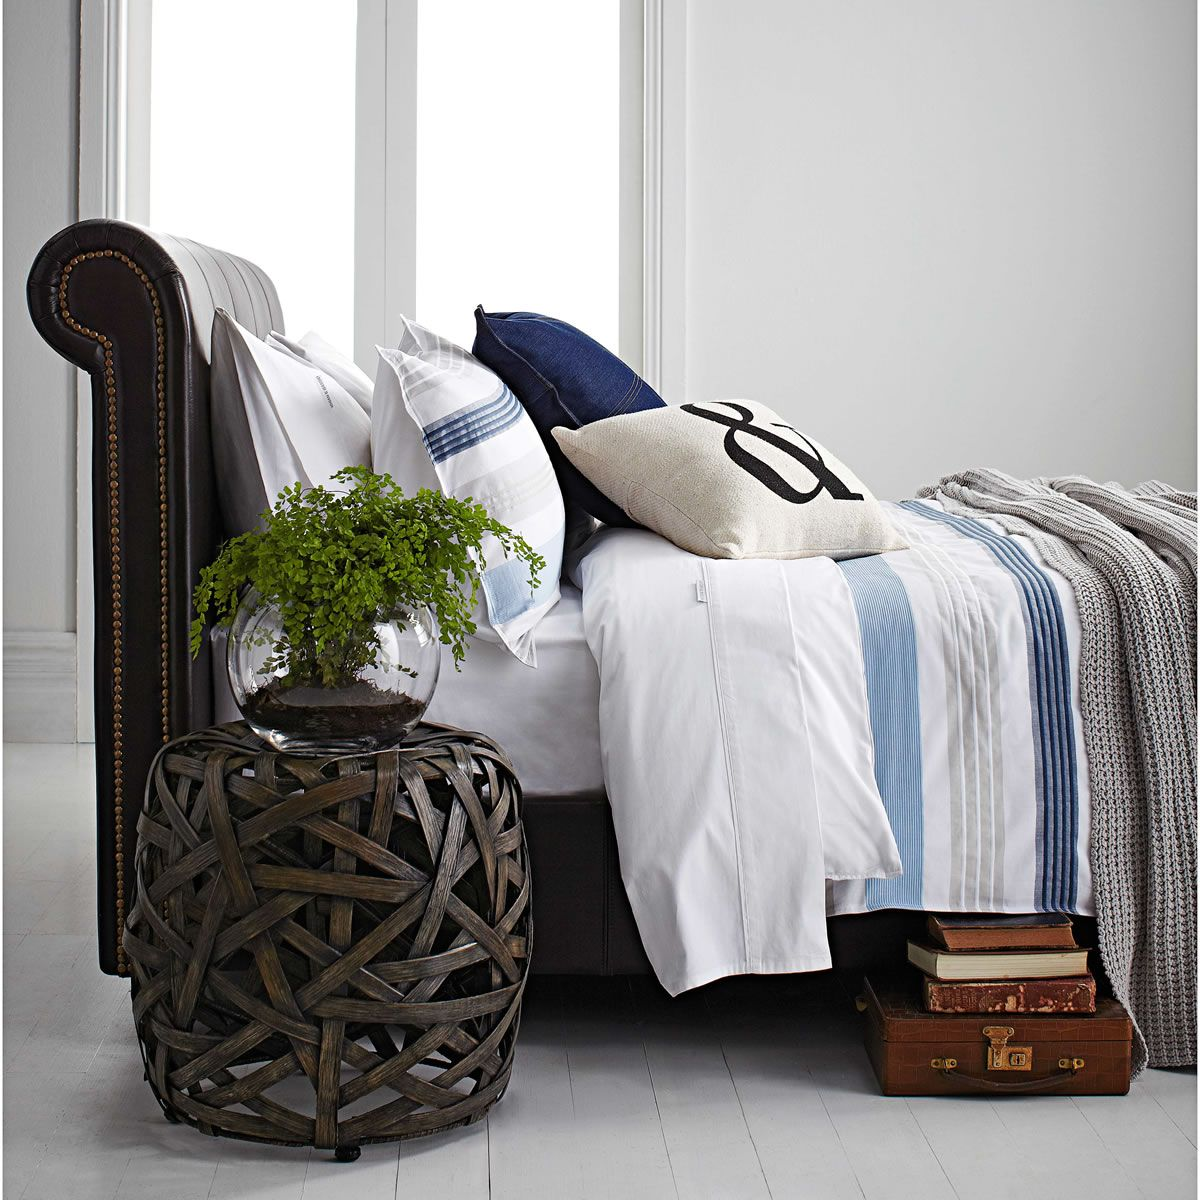 Birds nest stools as bedside table home furniture home